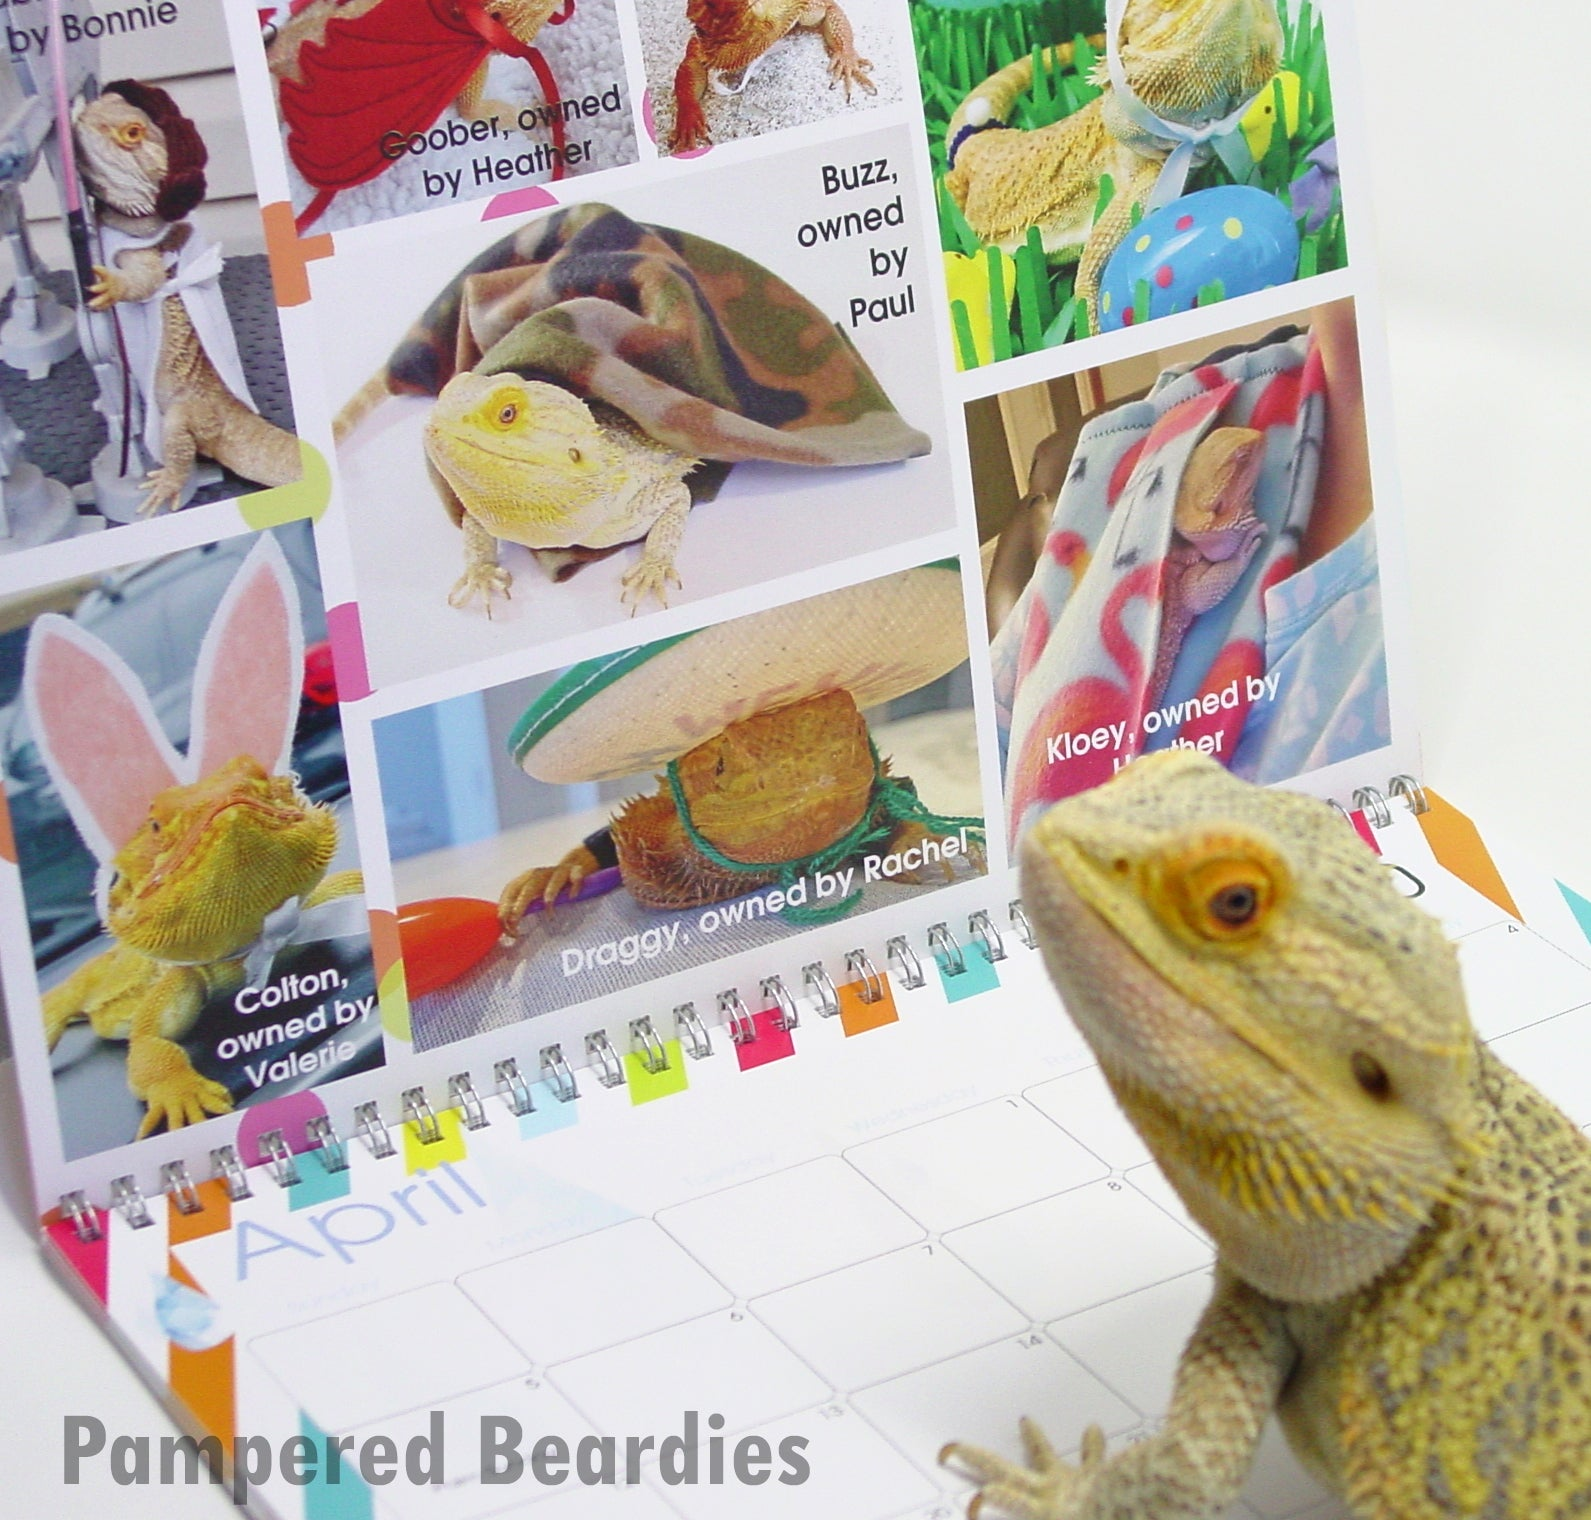 Now taking Pre-Orders through Dec 10th for our 2020 Pampered Beardies Calendar!